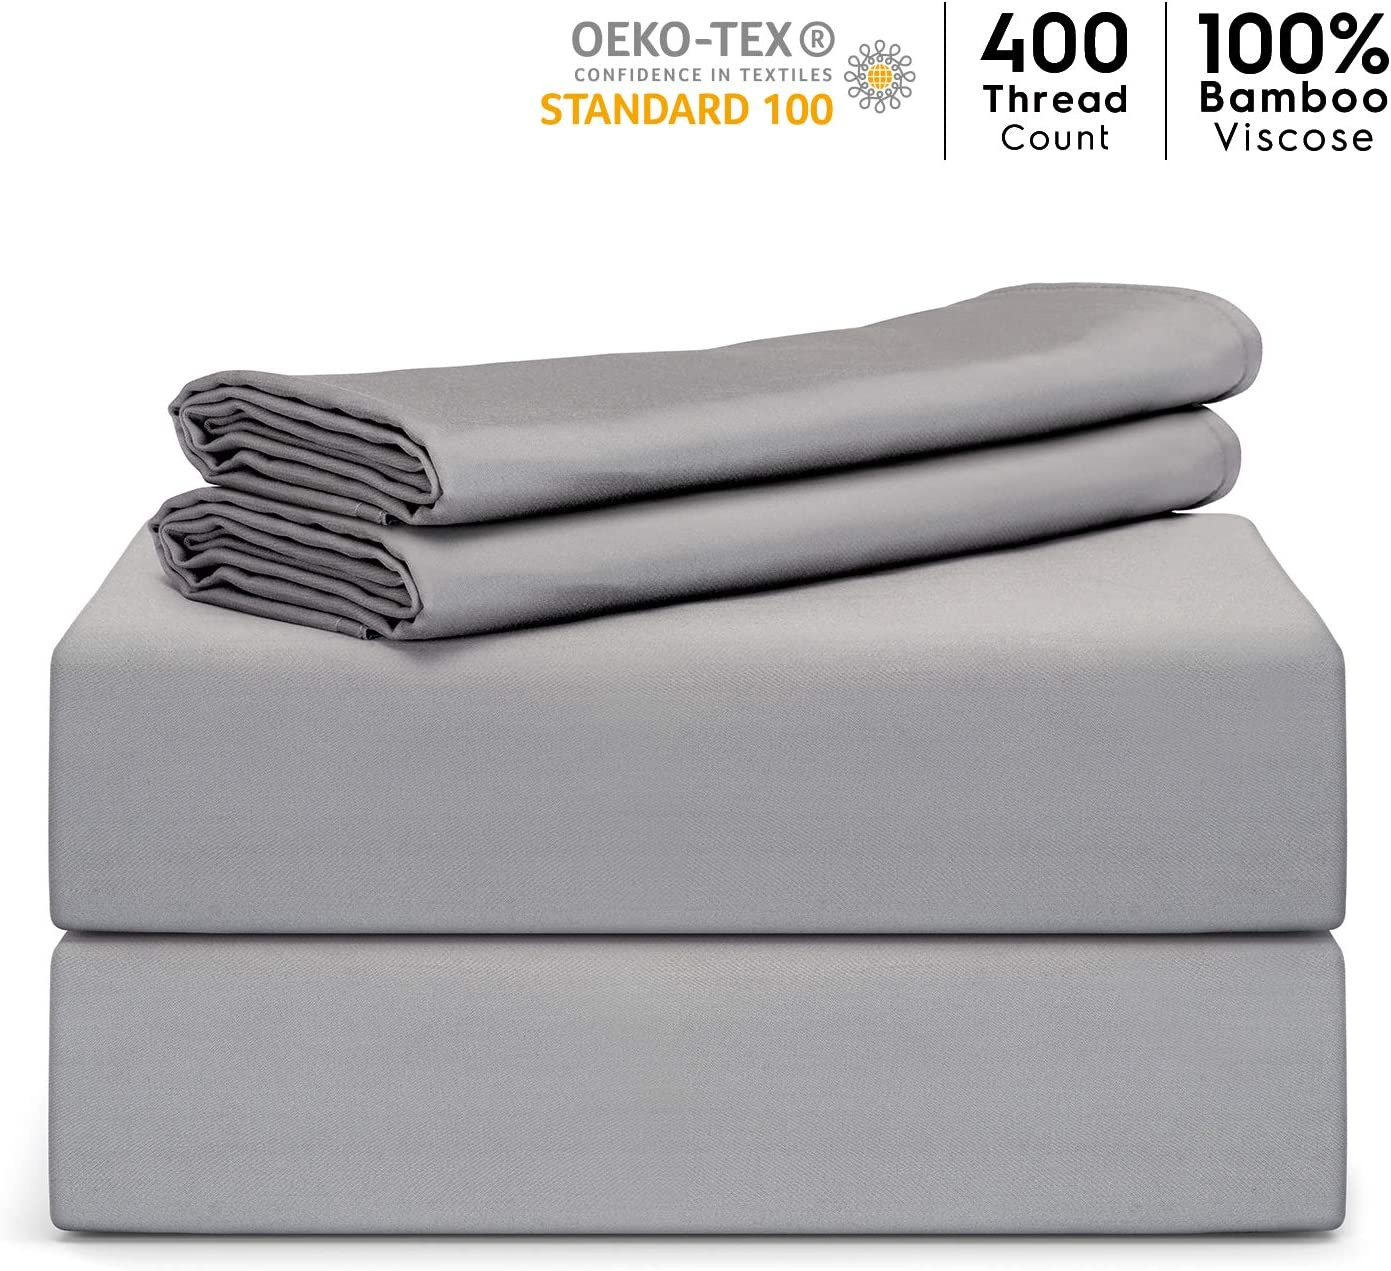 """Tafts Bamboo Sheets Queen Size - 100% Pure Organic Viscose Bamboo Sheet Set - 400TC Bamboo Bed Sheets - 4 Pieces - 17"""" Deep Pocket - Silk Feel, Cooling, Anti-Static, Hypoallergenic (Space Grey)"""